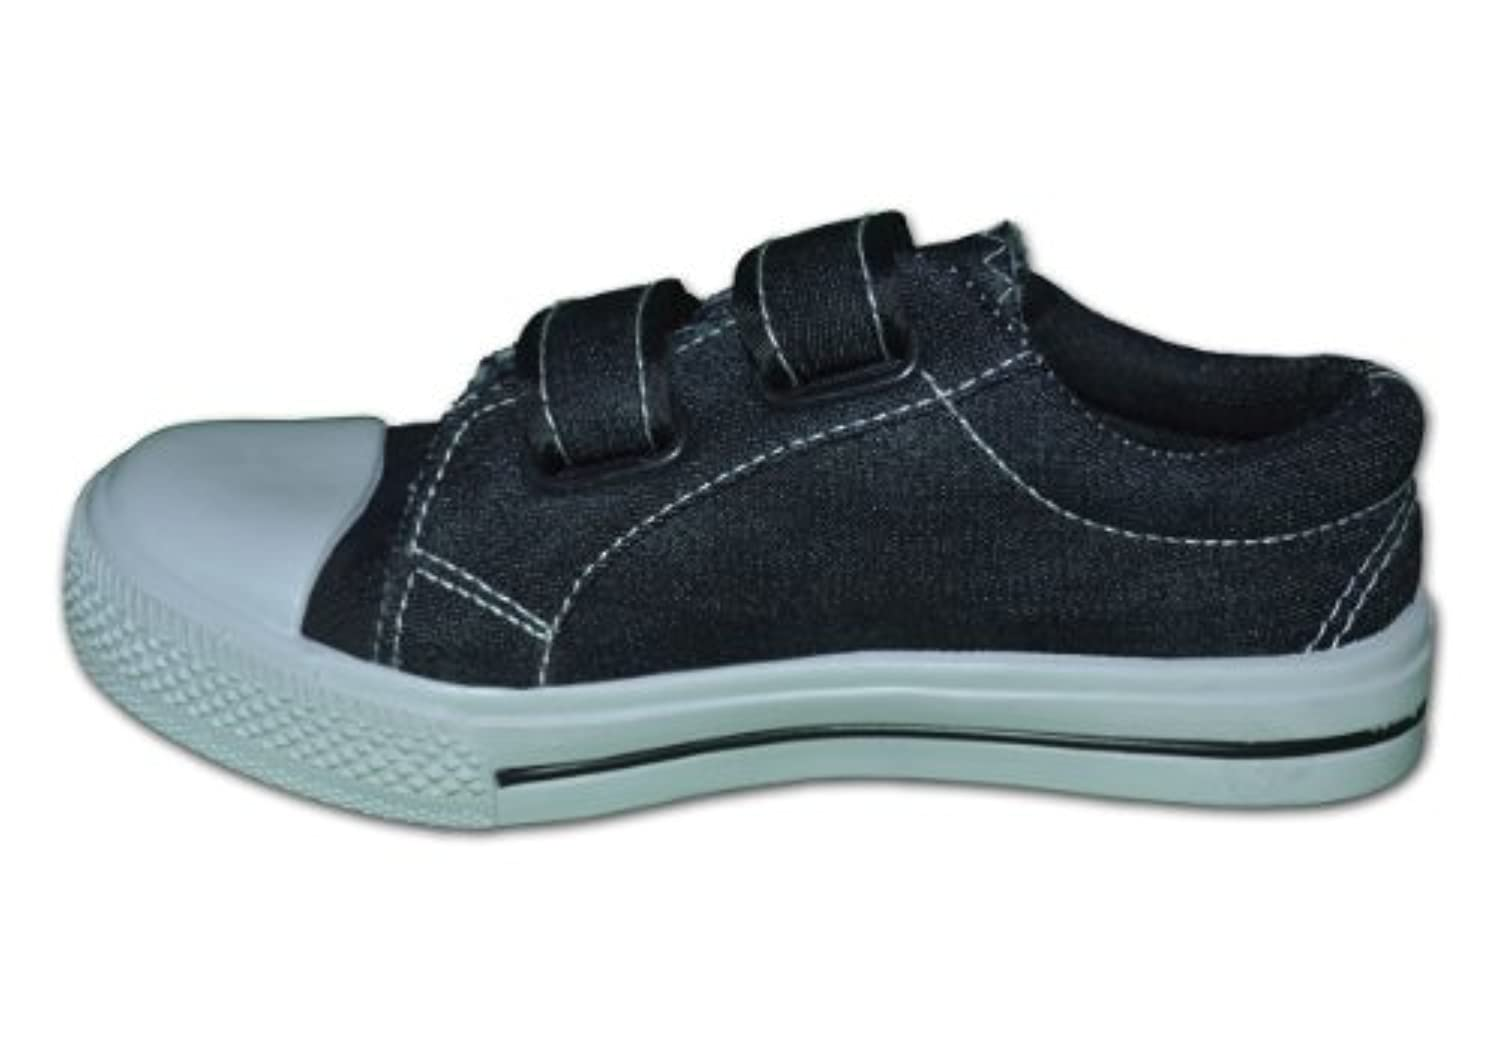 Red Tag Canvas Pumps Plimsolls Sneakers Trainers with Denim Finish - Kids/Children - Velcro Strap - RT17 (Black, 12)